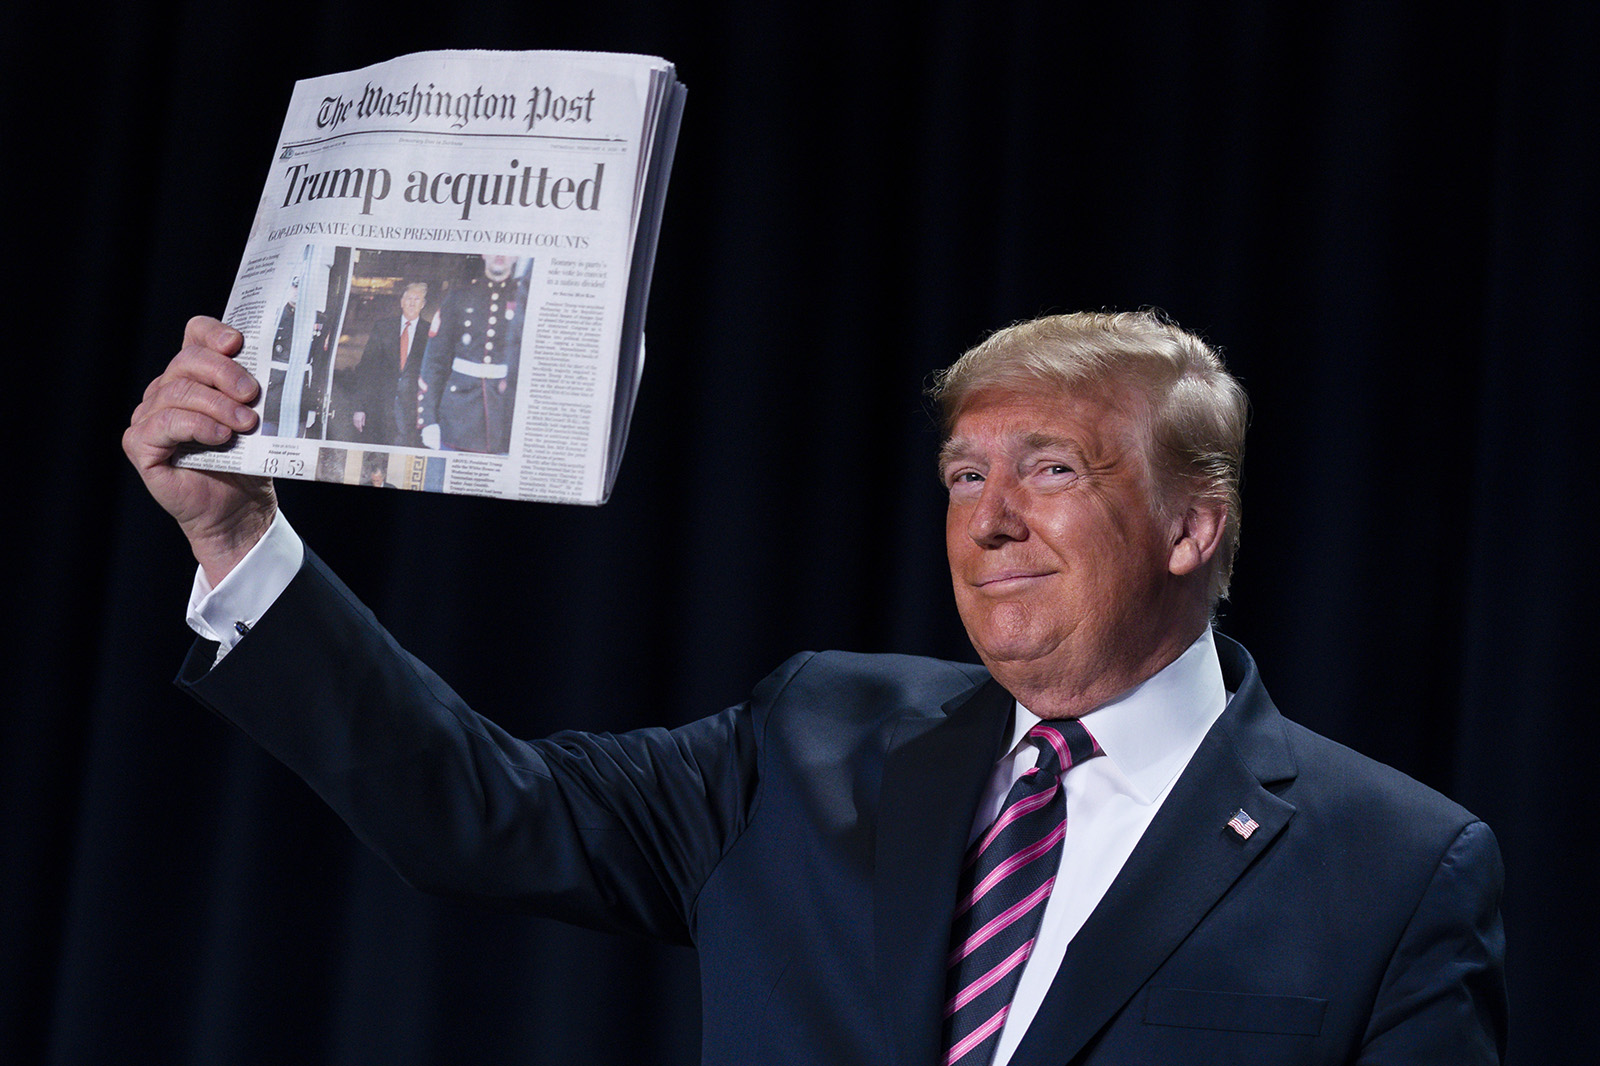 """President Donald Trump holds up a newspaper with the headline that reads """"Trump acquitted"""" during the 68th annual National Prayer Breakfast, at the Washington Hilton, on Feb. 6, 2020, in Washington. (AP Photo/ Evan Vucci)"""